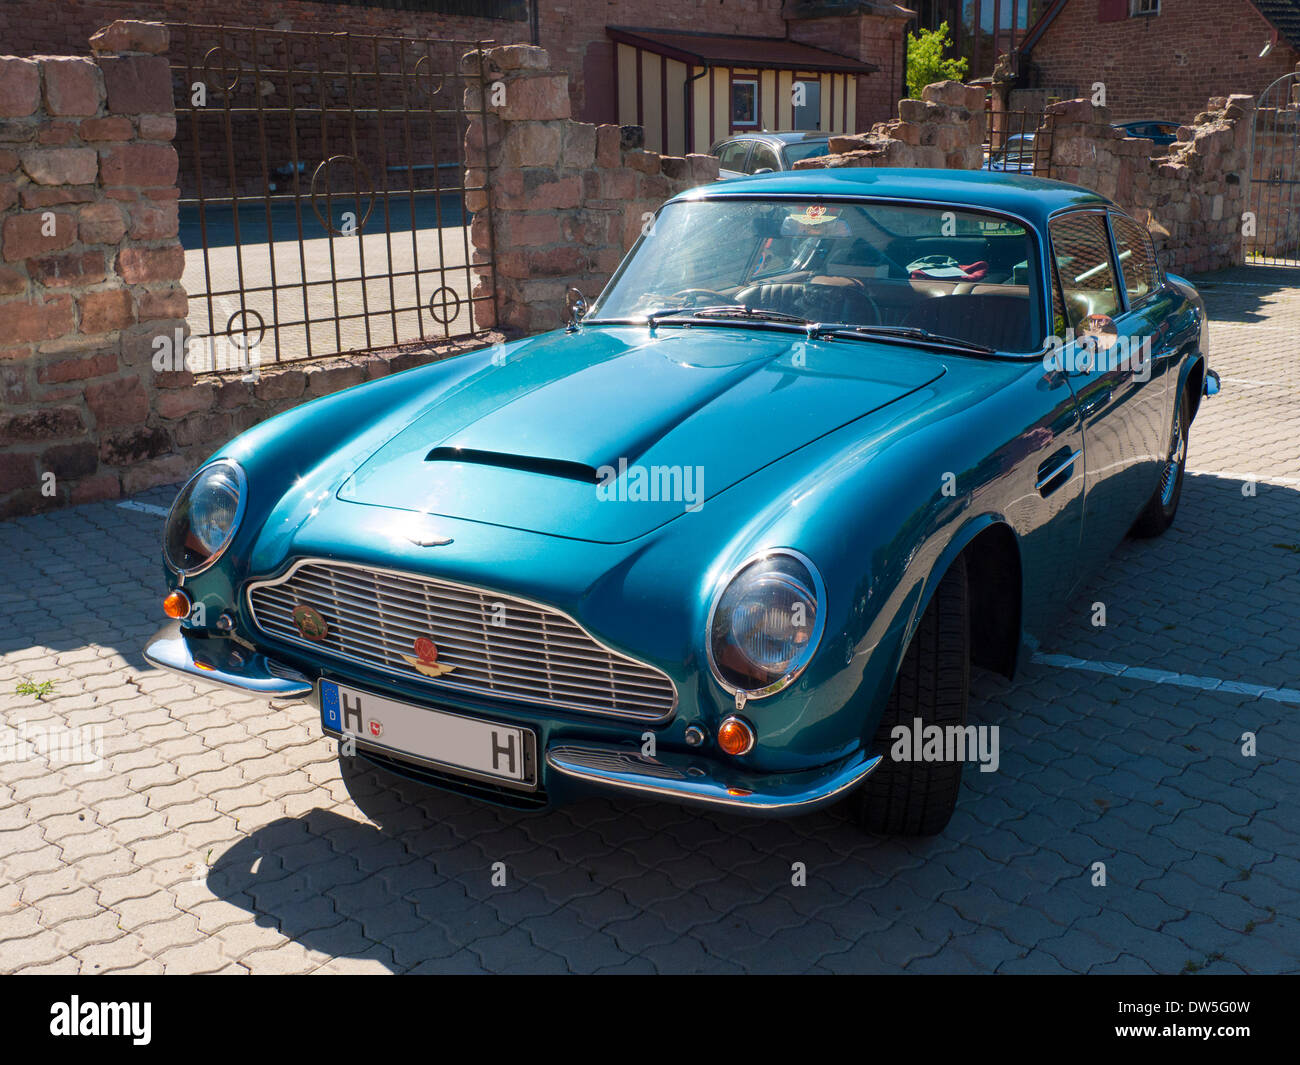 Aston Martin DB5 (1963 to 1965), in a parking lot, Hesse, Germany - Stock Image